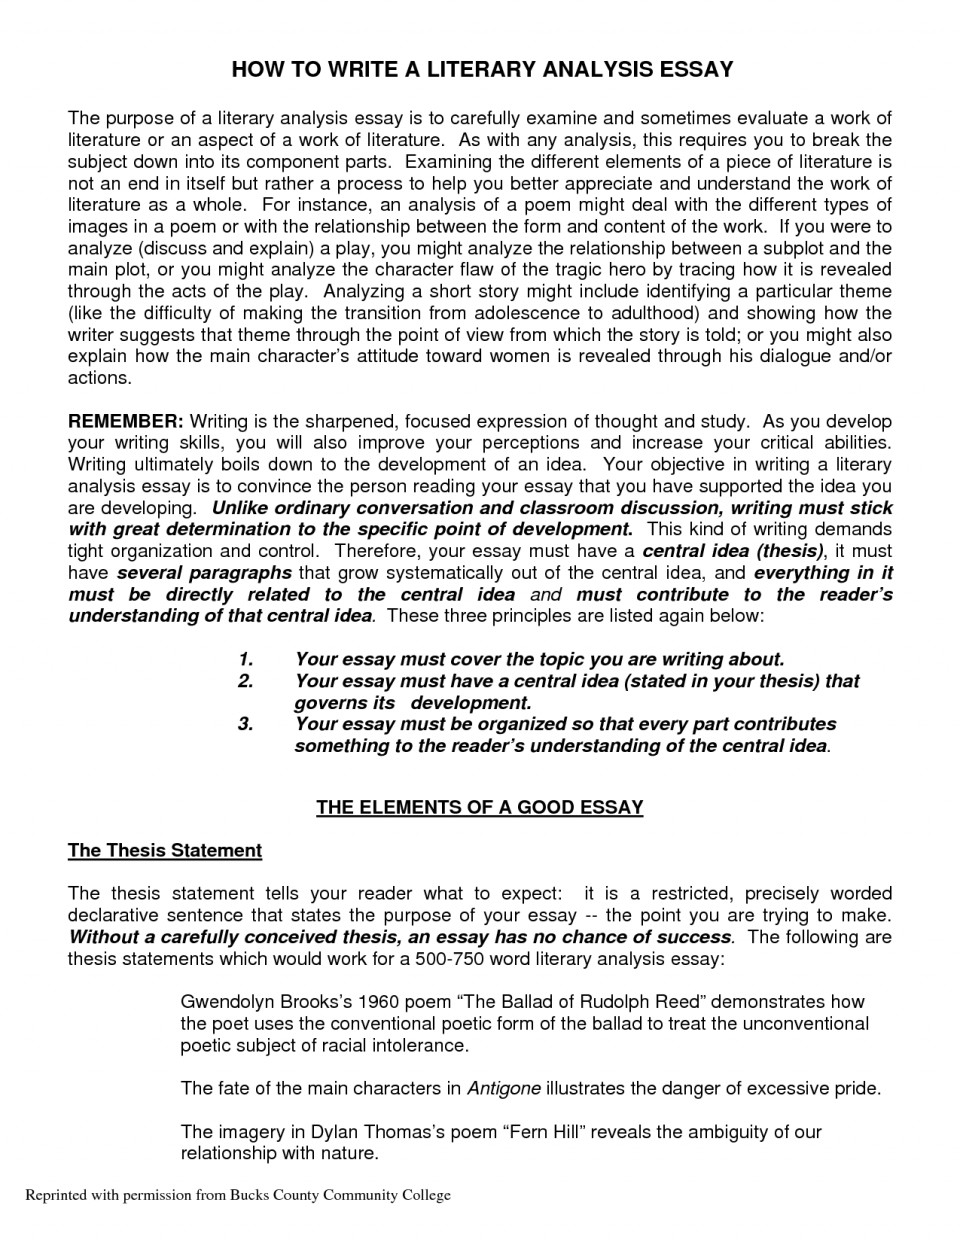 003 Awesome Collection Of Ideas Example Literary Essaylso Format Sample Huanyii Fancy Critical How To Write Formidable A Essay Good English Literature Introduction Conclusion Grade 4 960